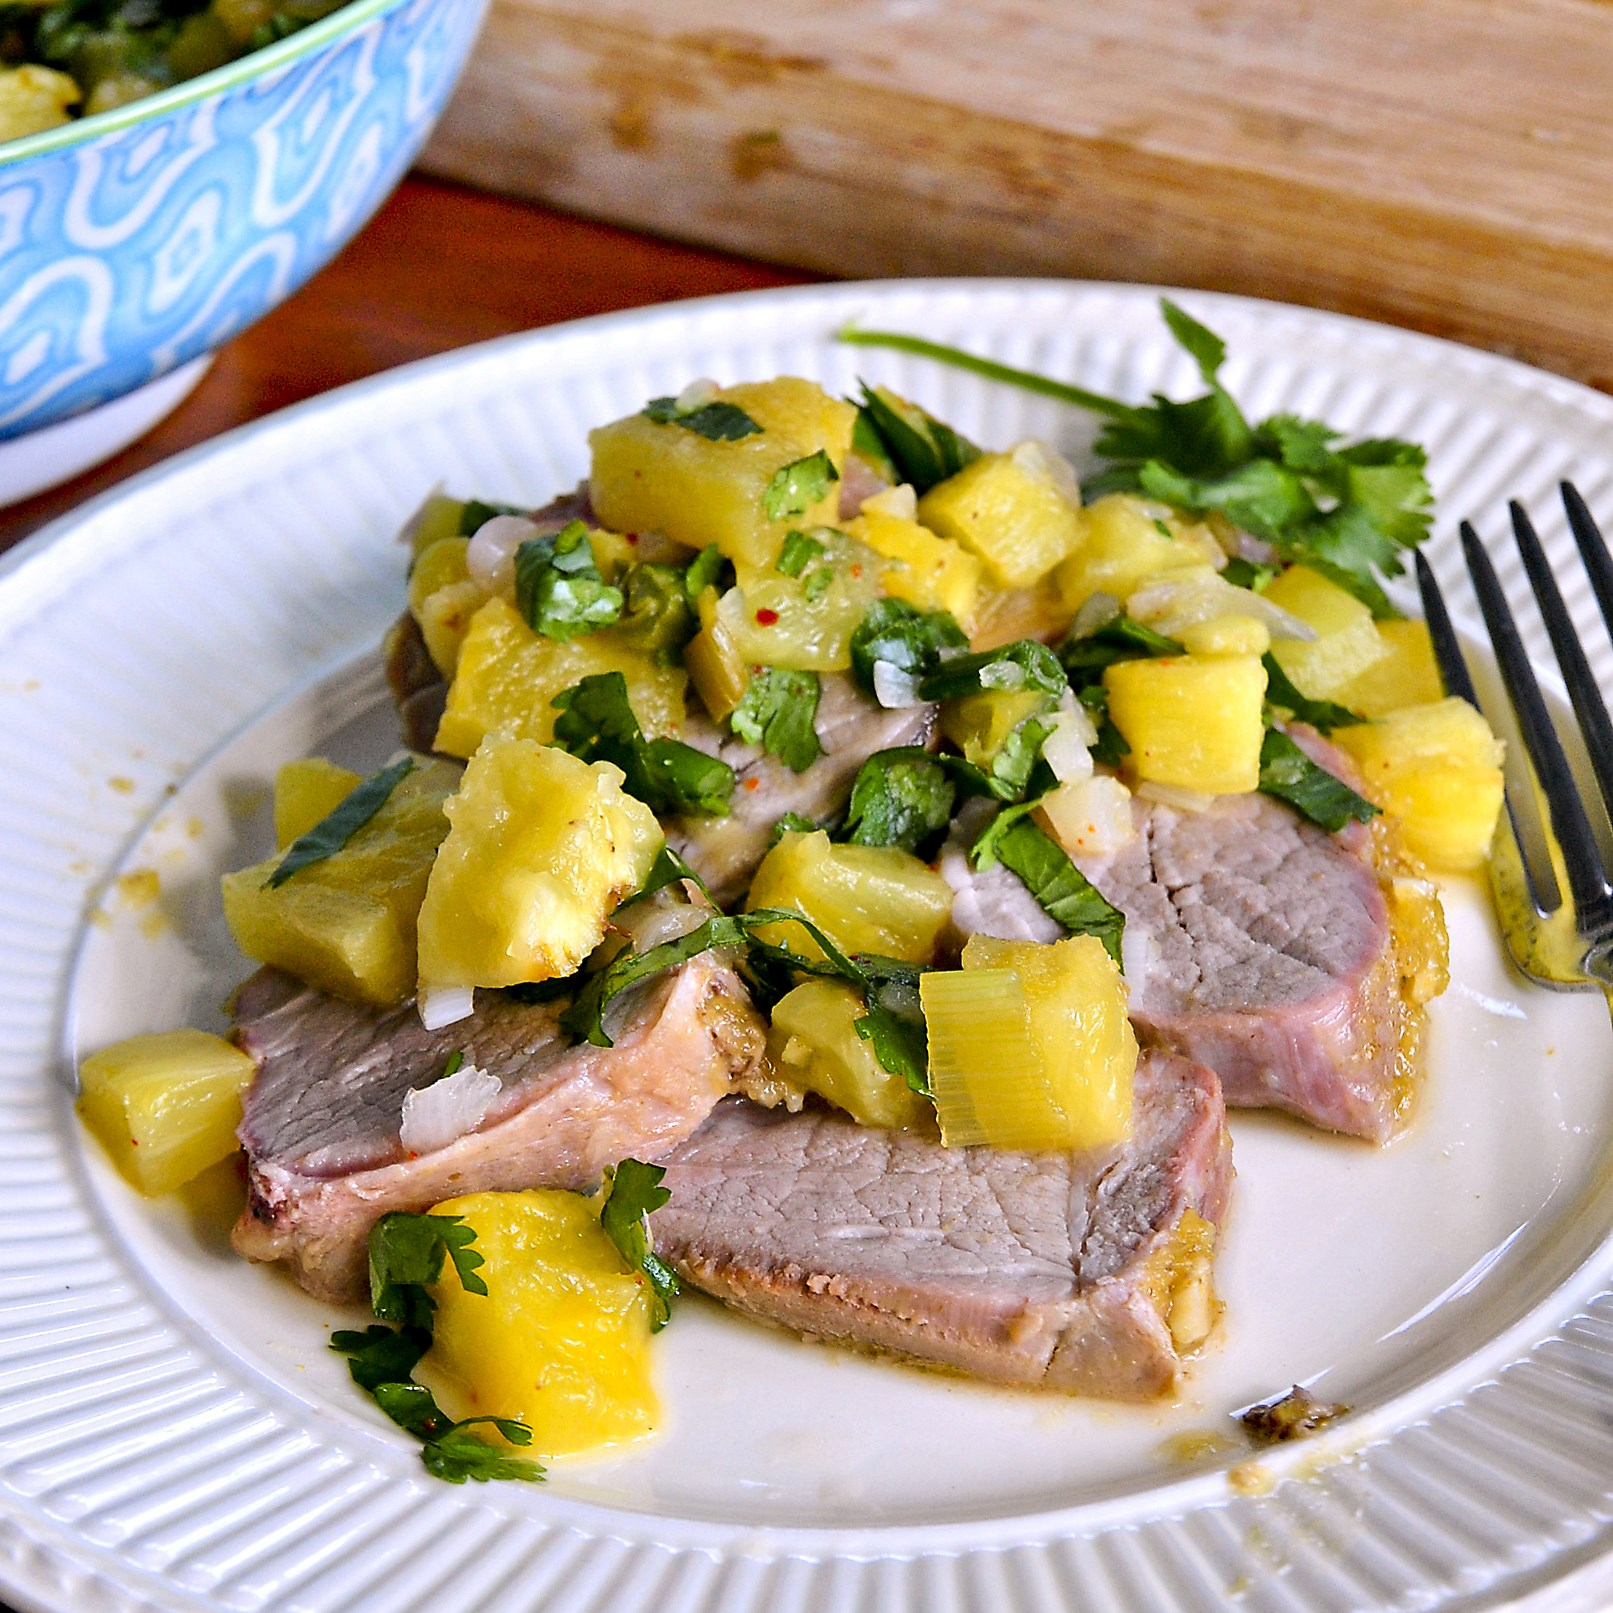 Let's Eat: Glazed Pork Loin With Pineapple-Scallion Chutney